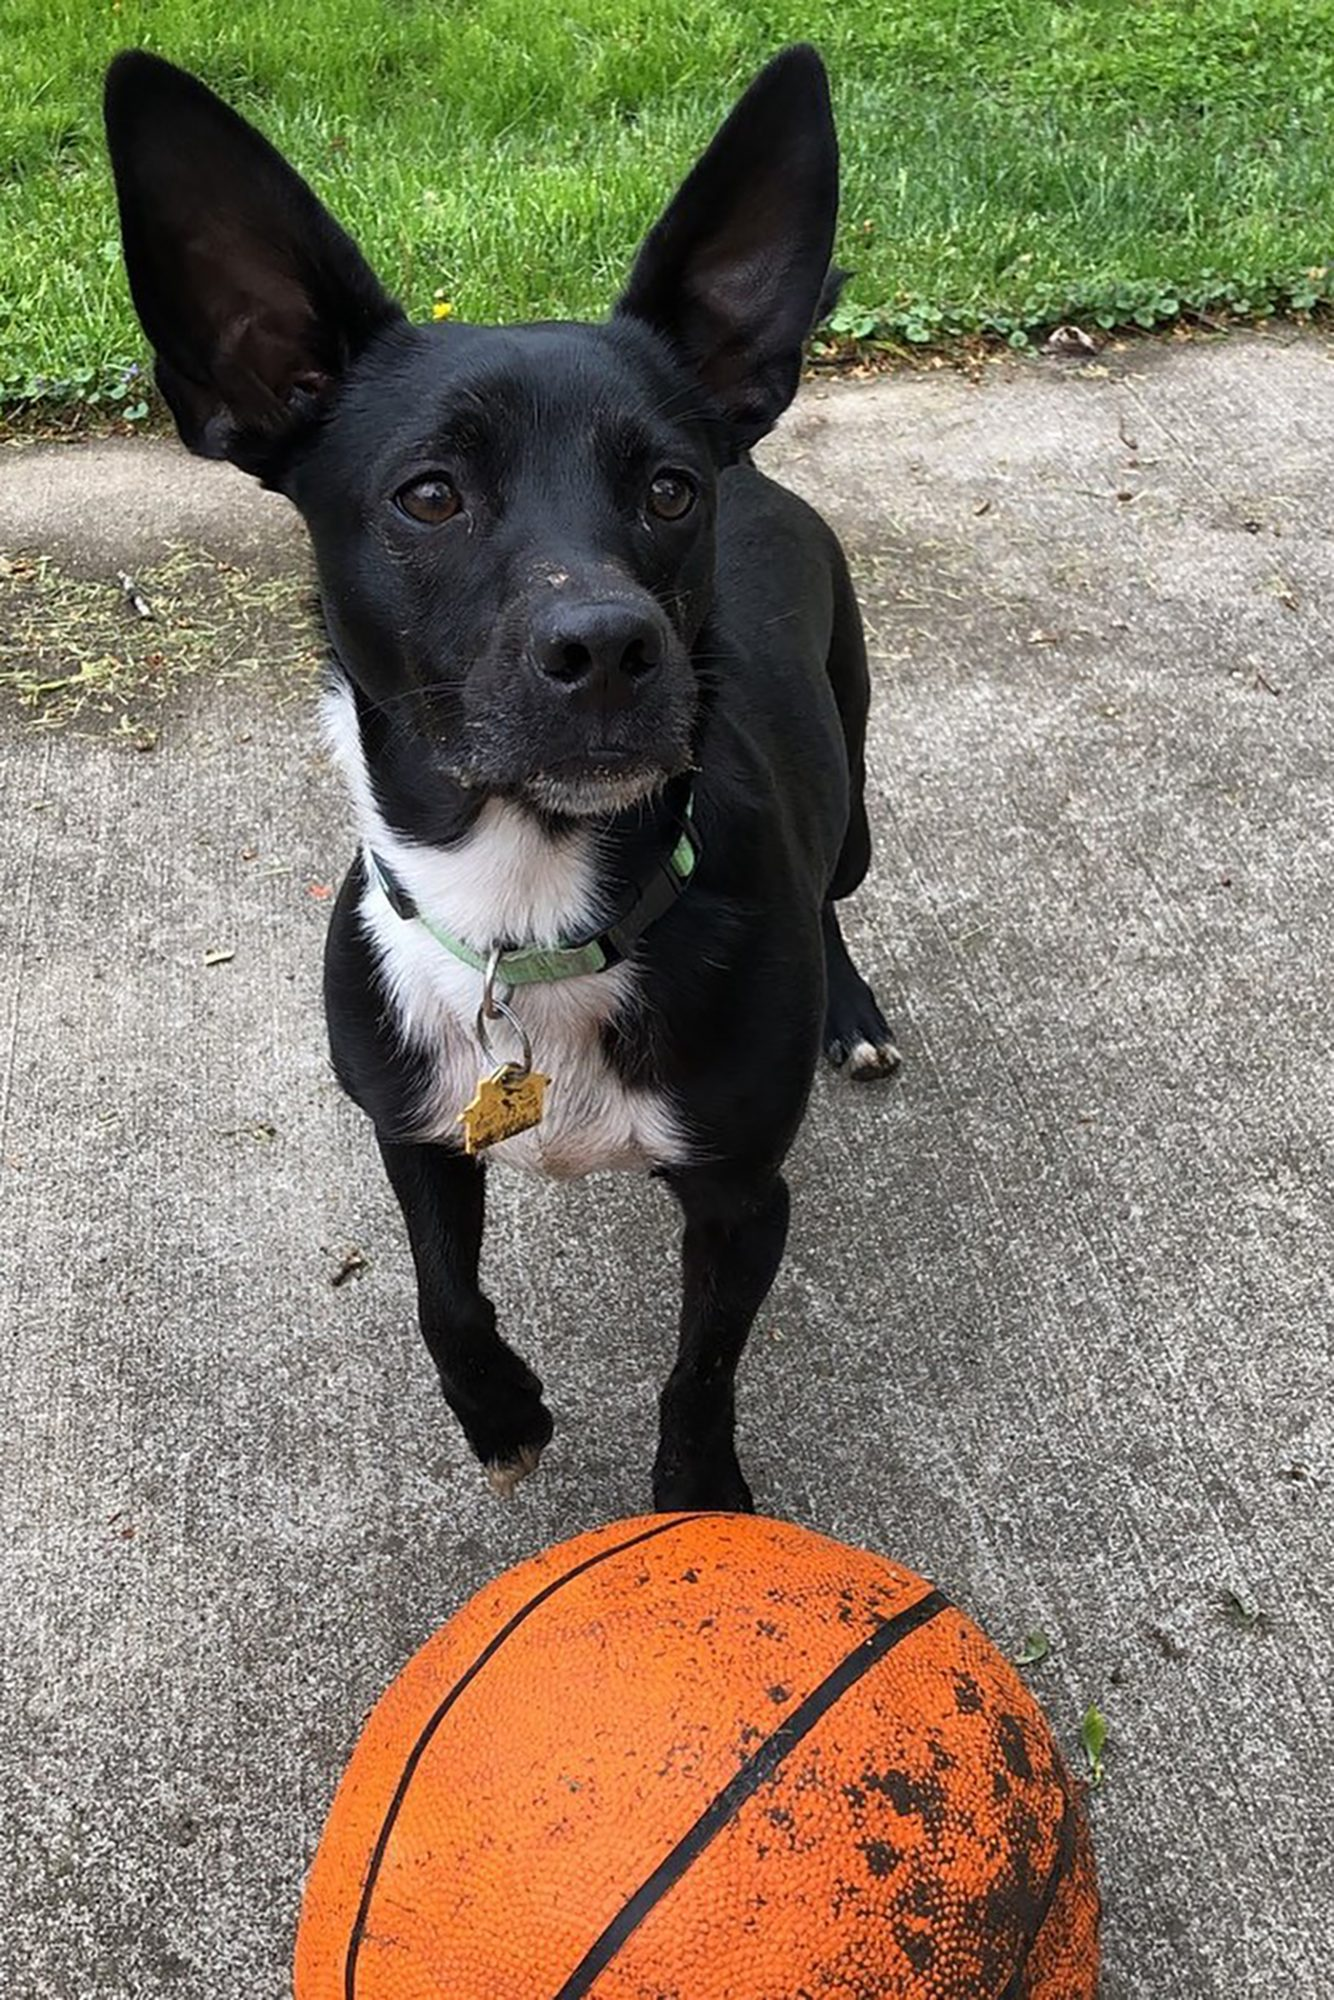 Black and white dog with basketball